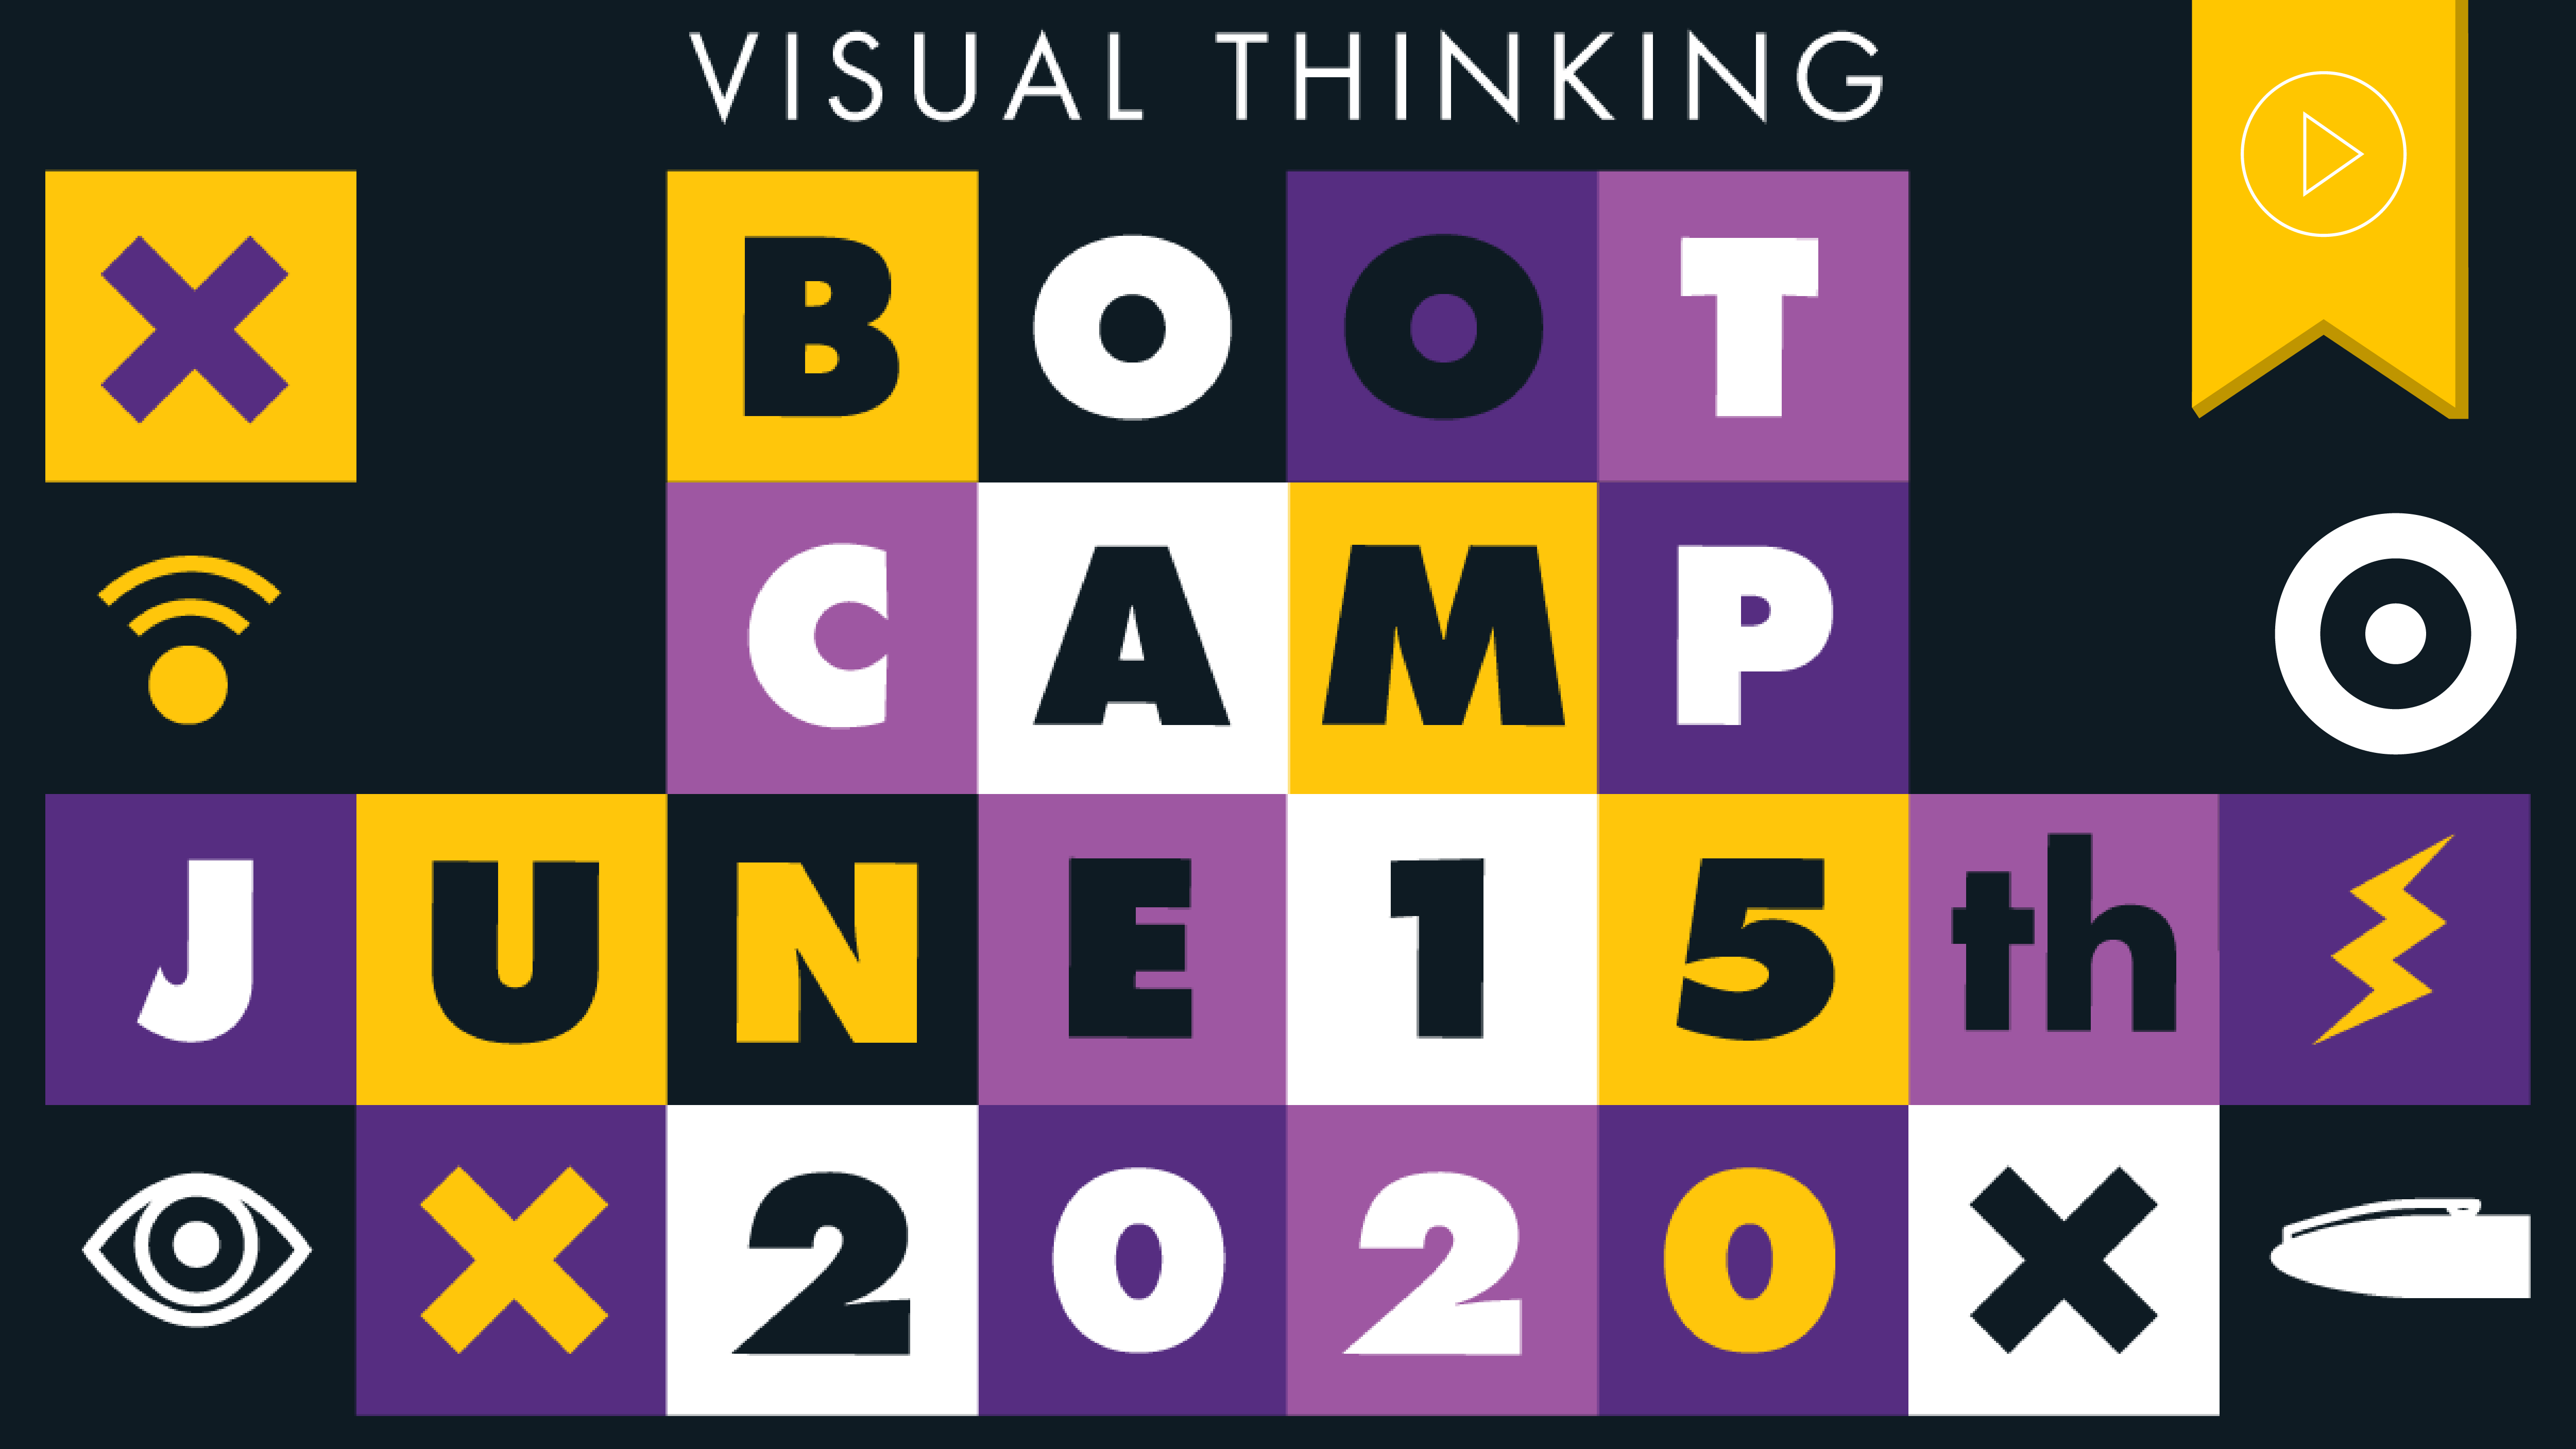 Header image with boxes and other visual thinking elements, text says visual thinking bootcamp june 15th 2020